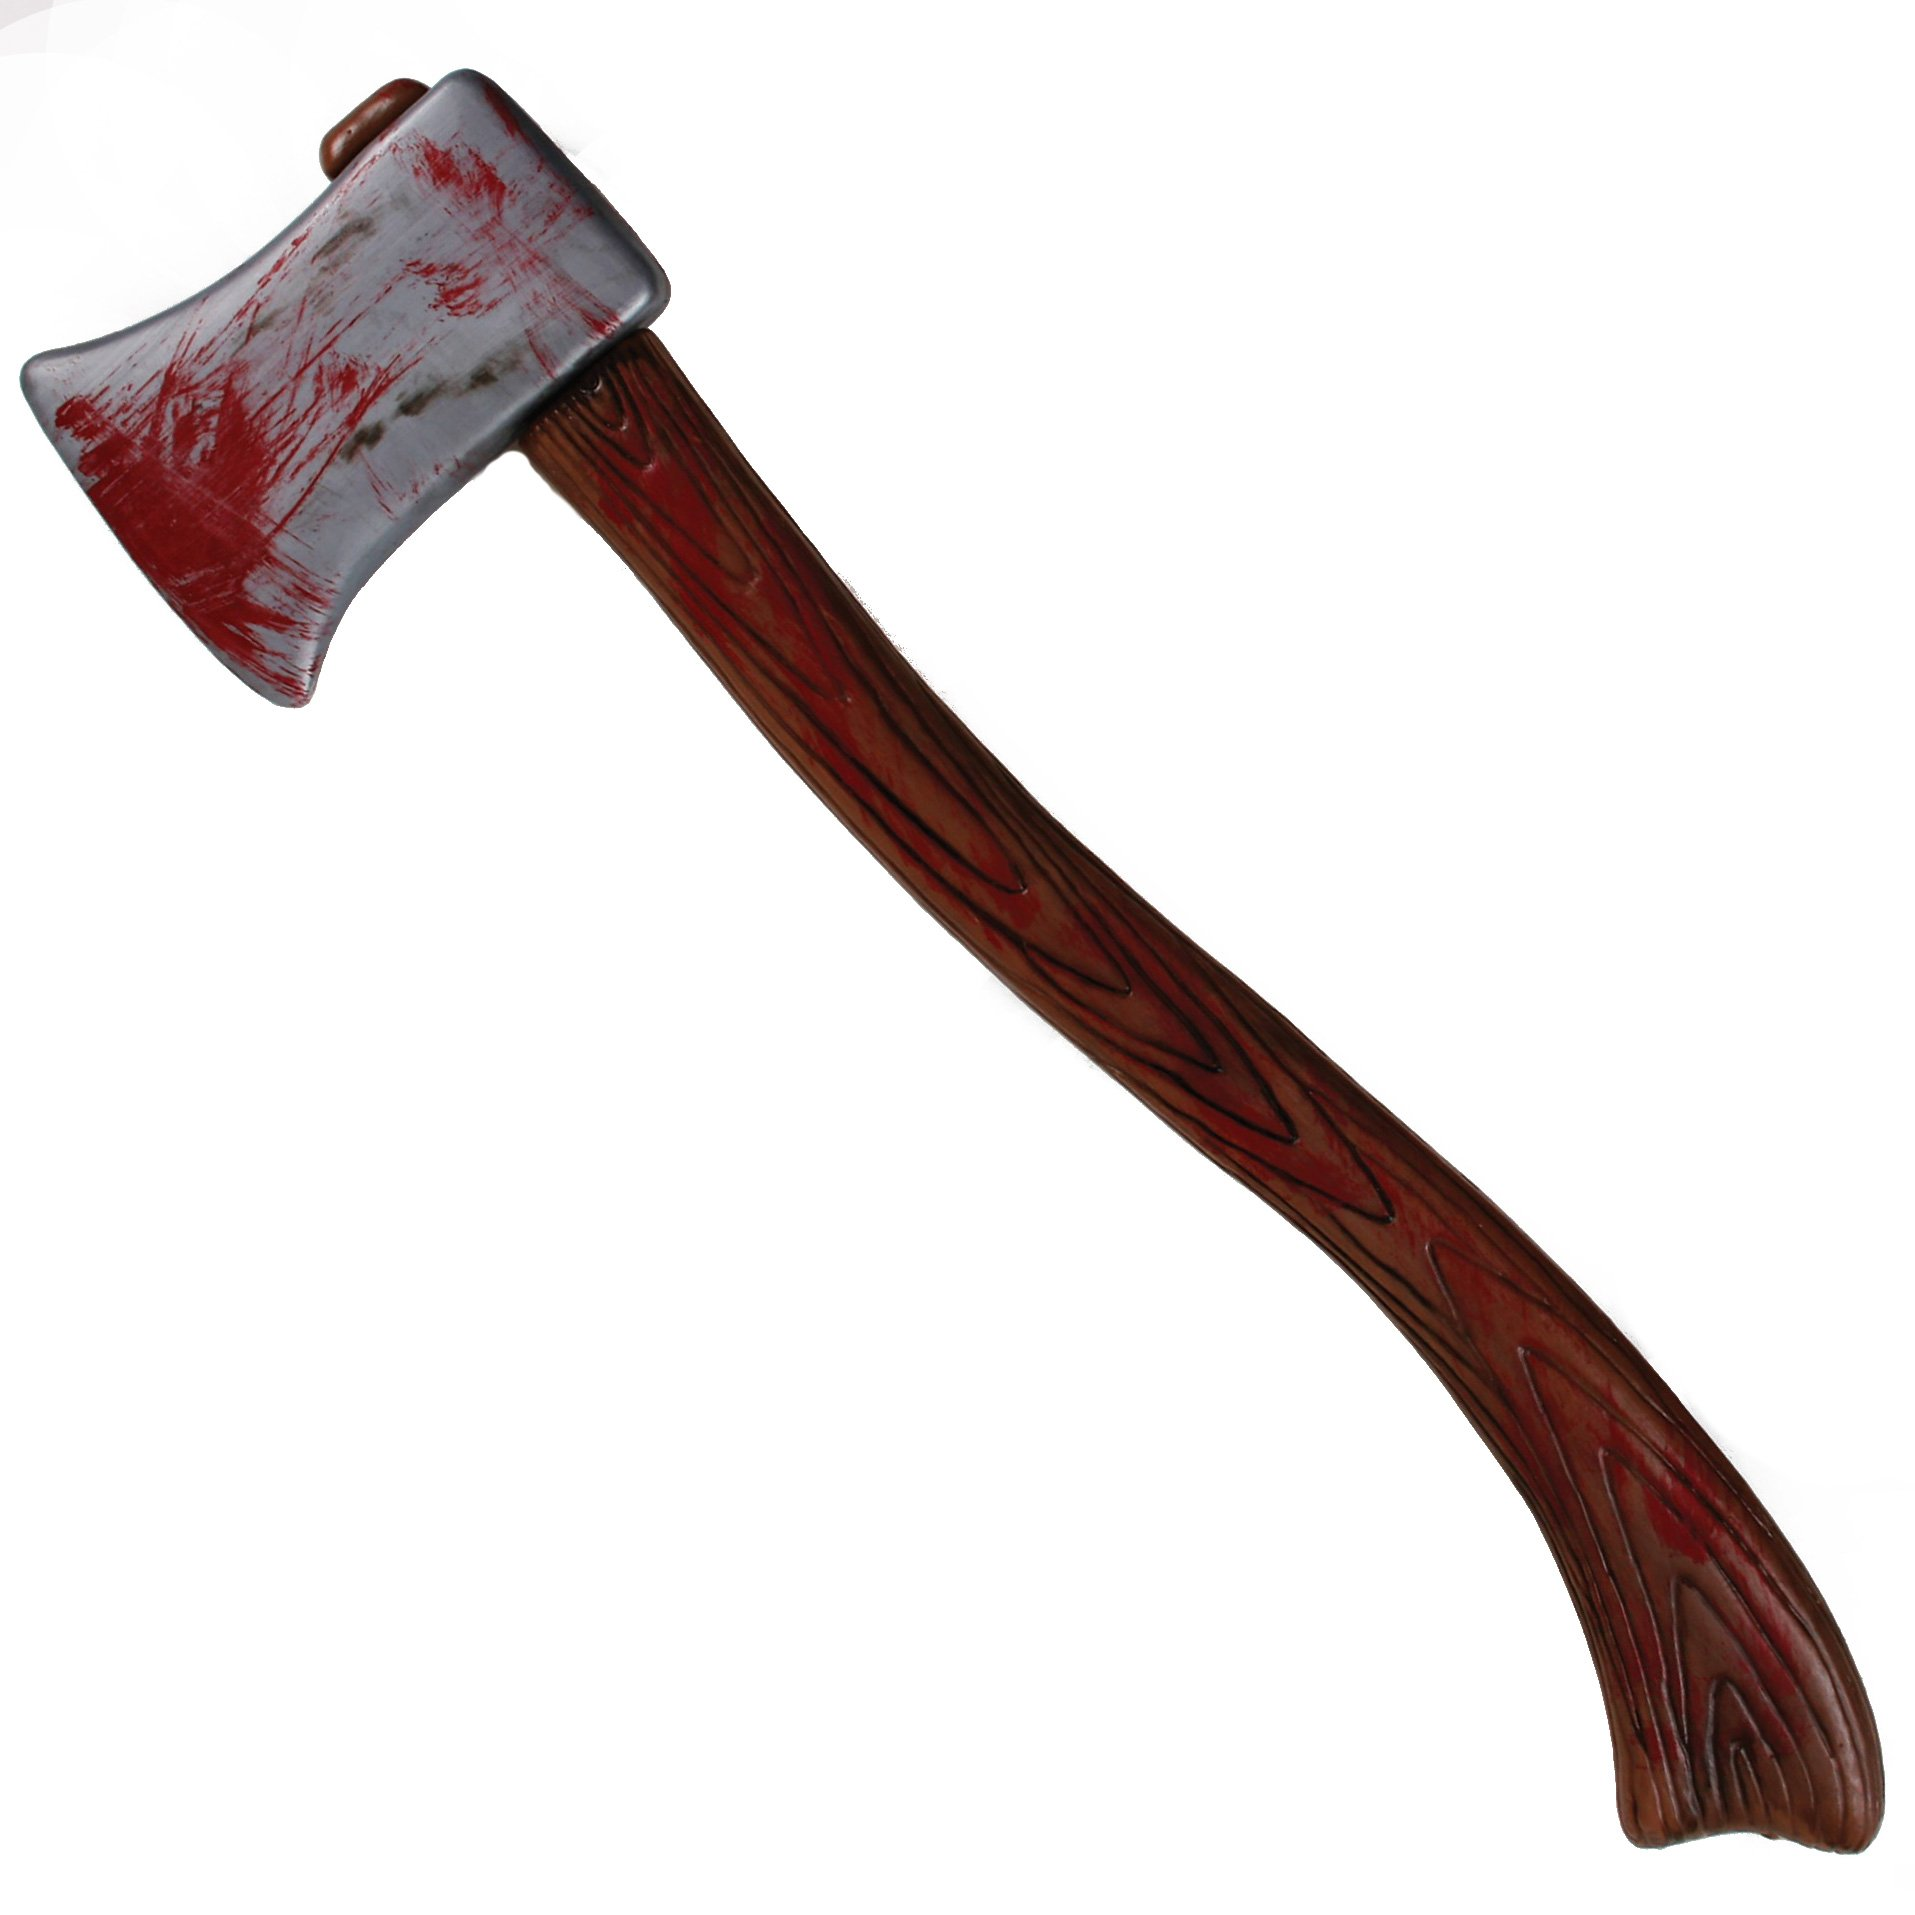 Axe or Bloody Axe Costume Accessory